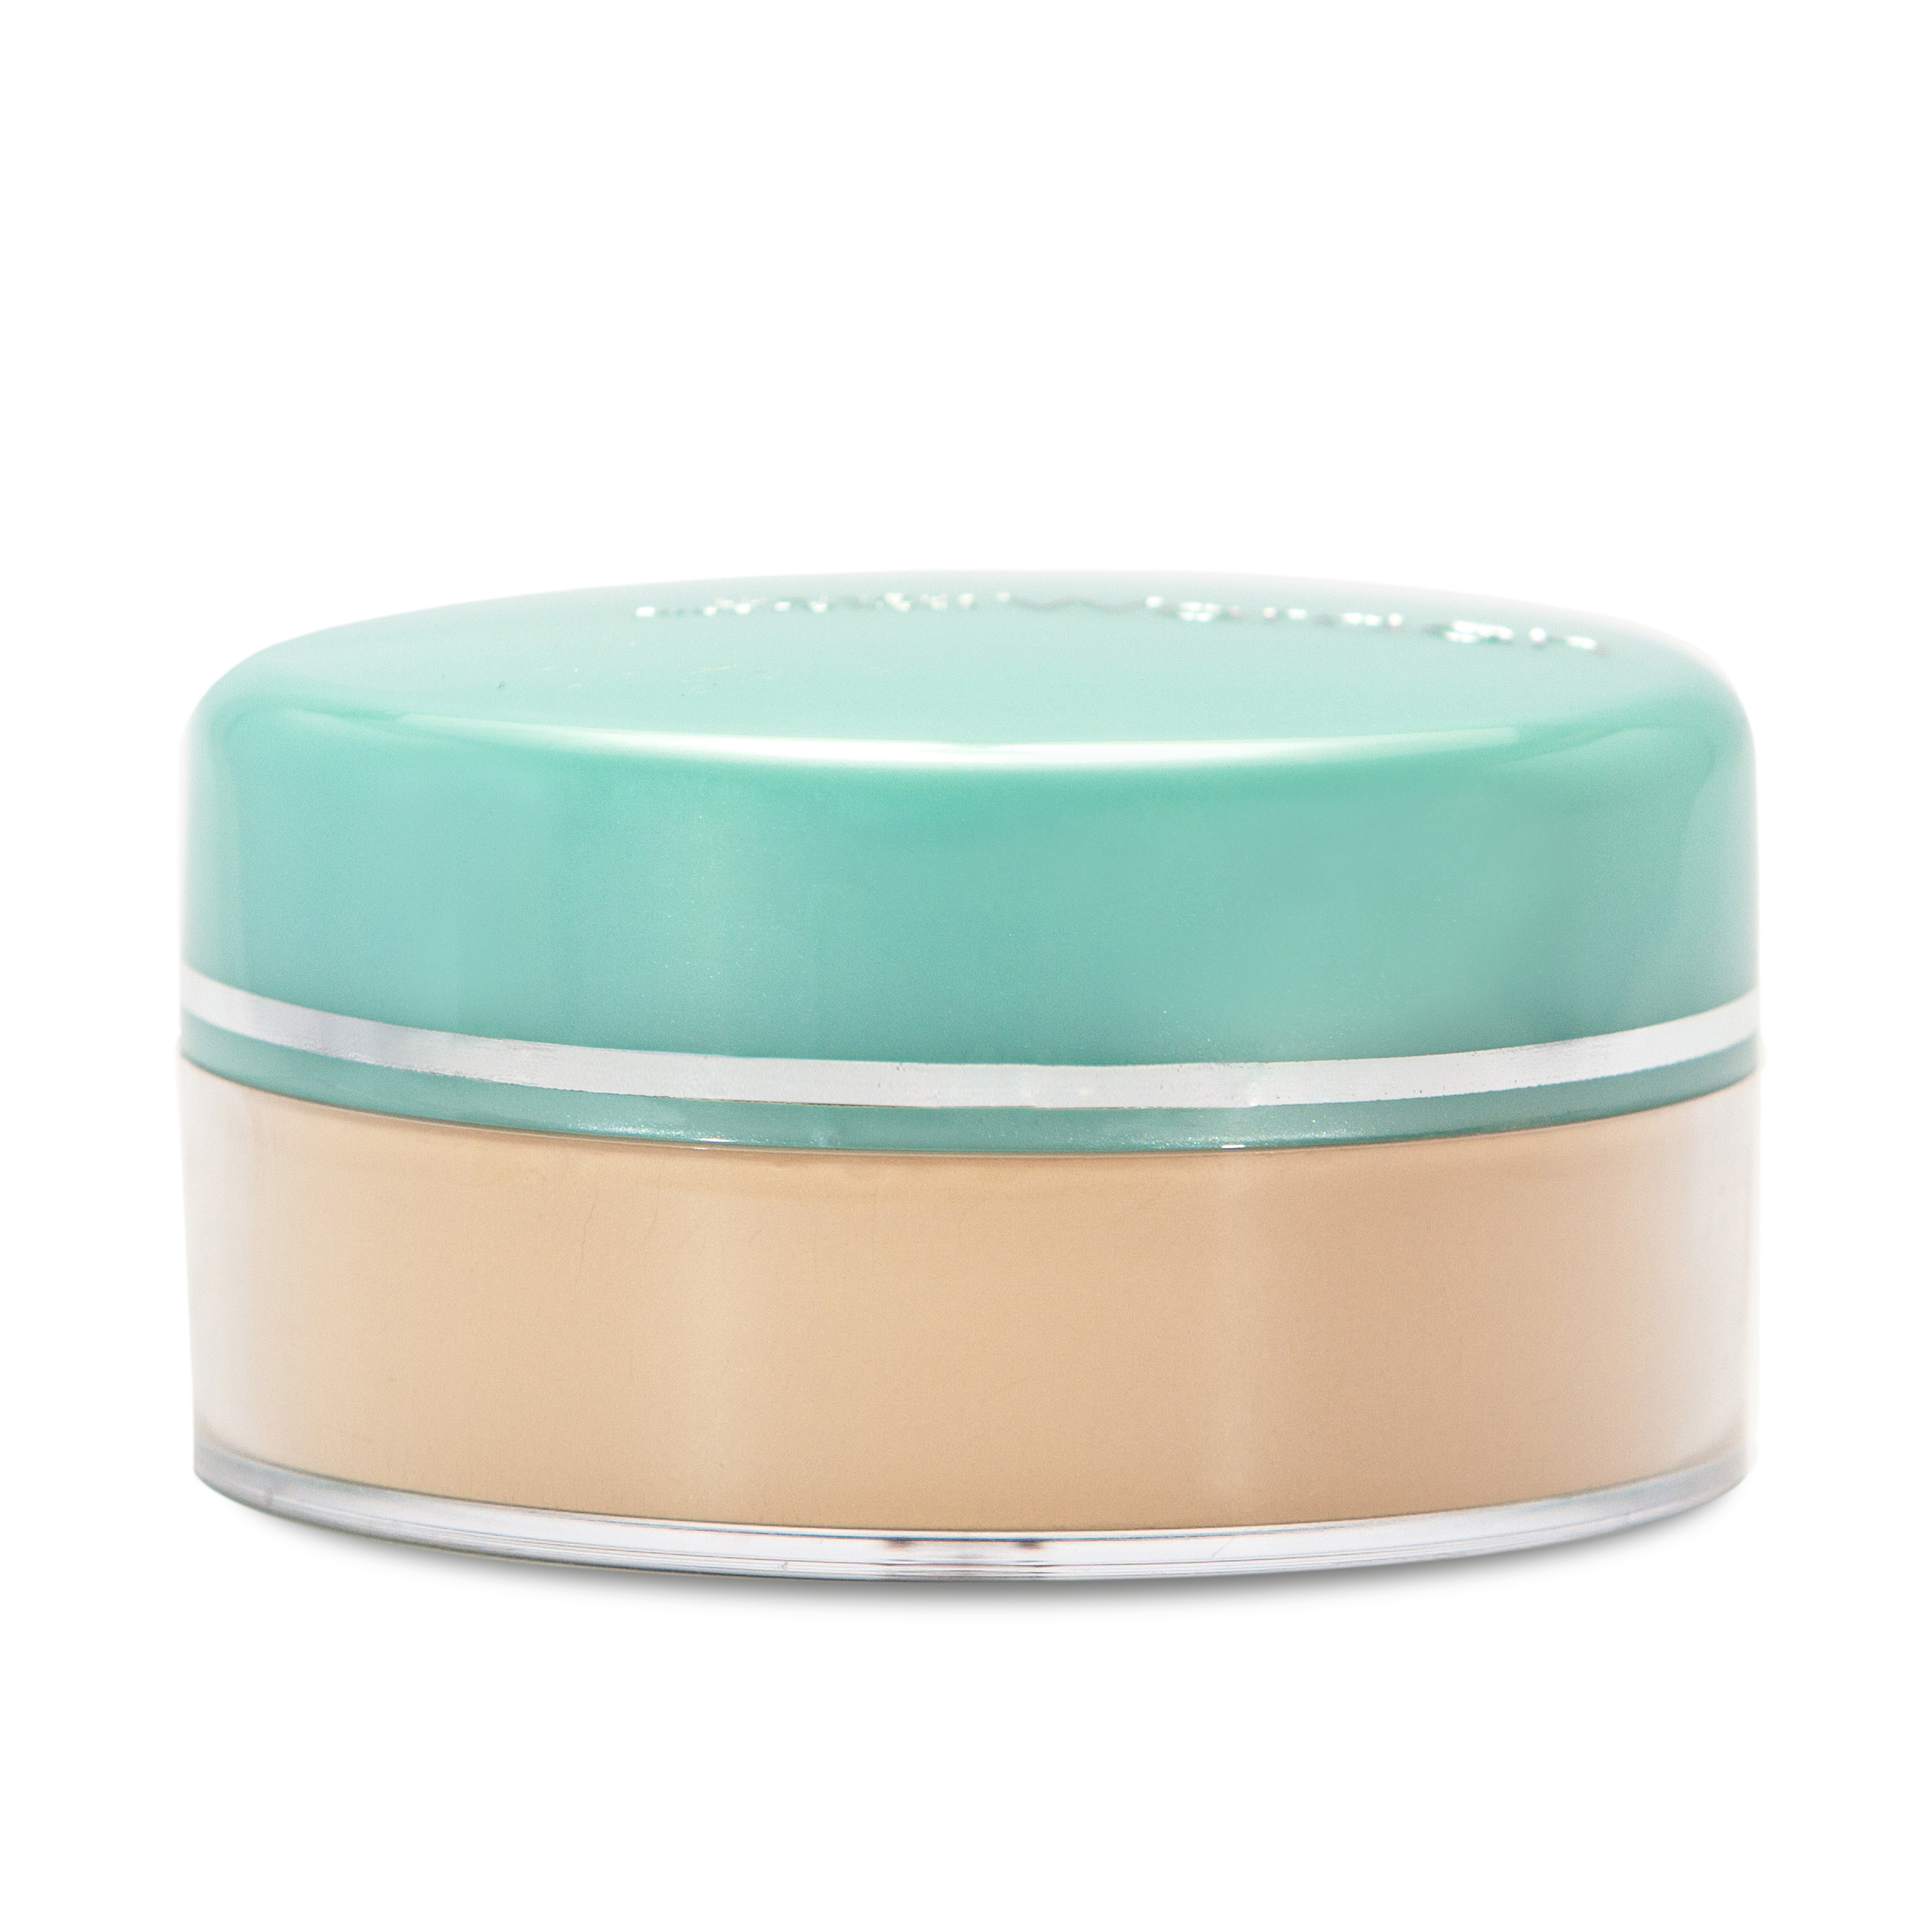 Wardah Everyday Luminous Face Powder 01 Light Beige 30gr | Gogobli